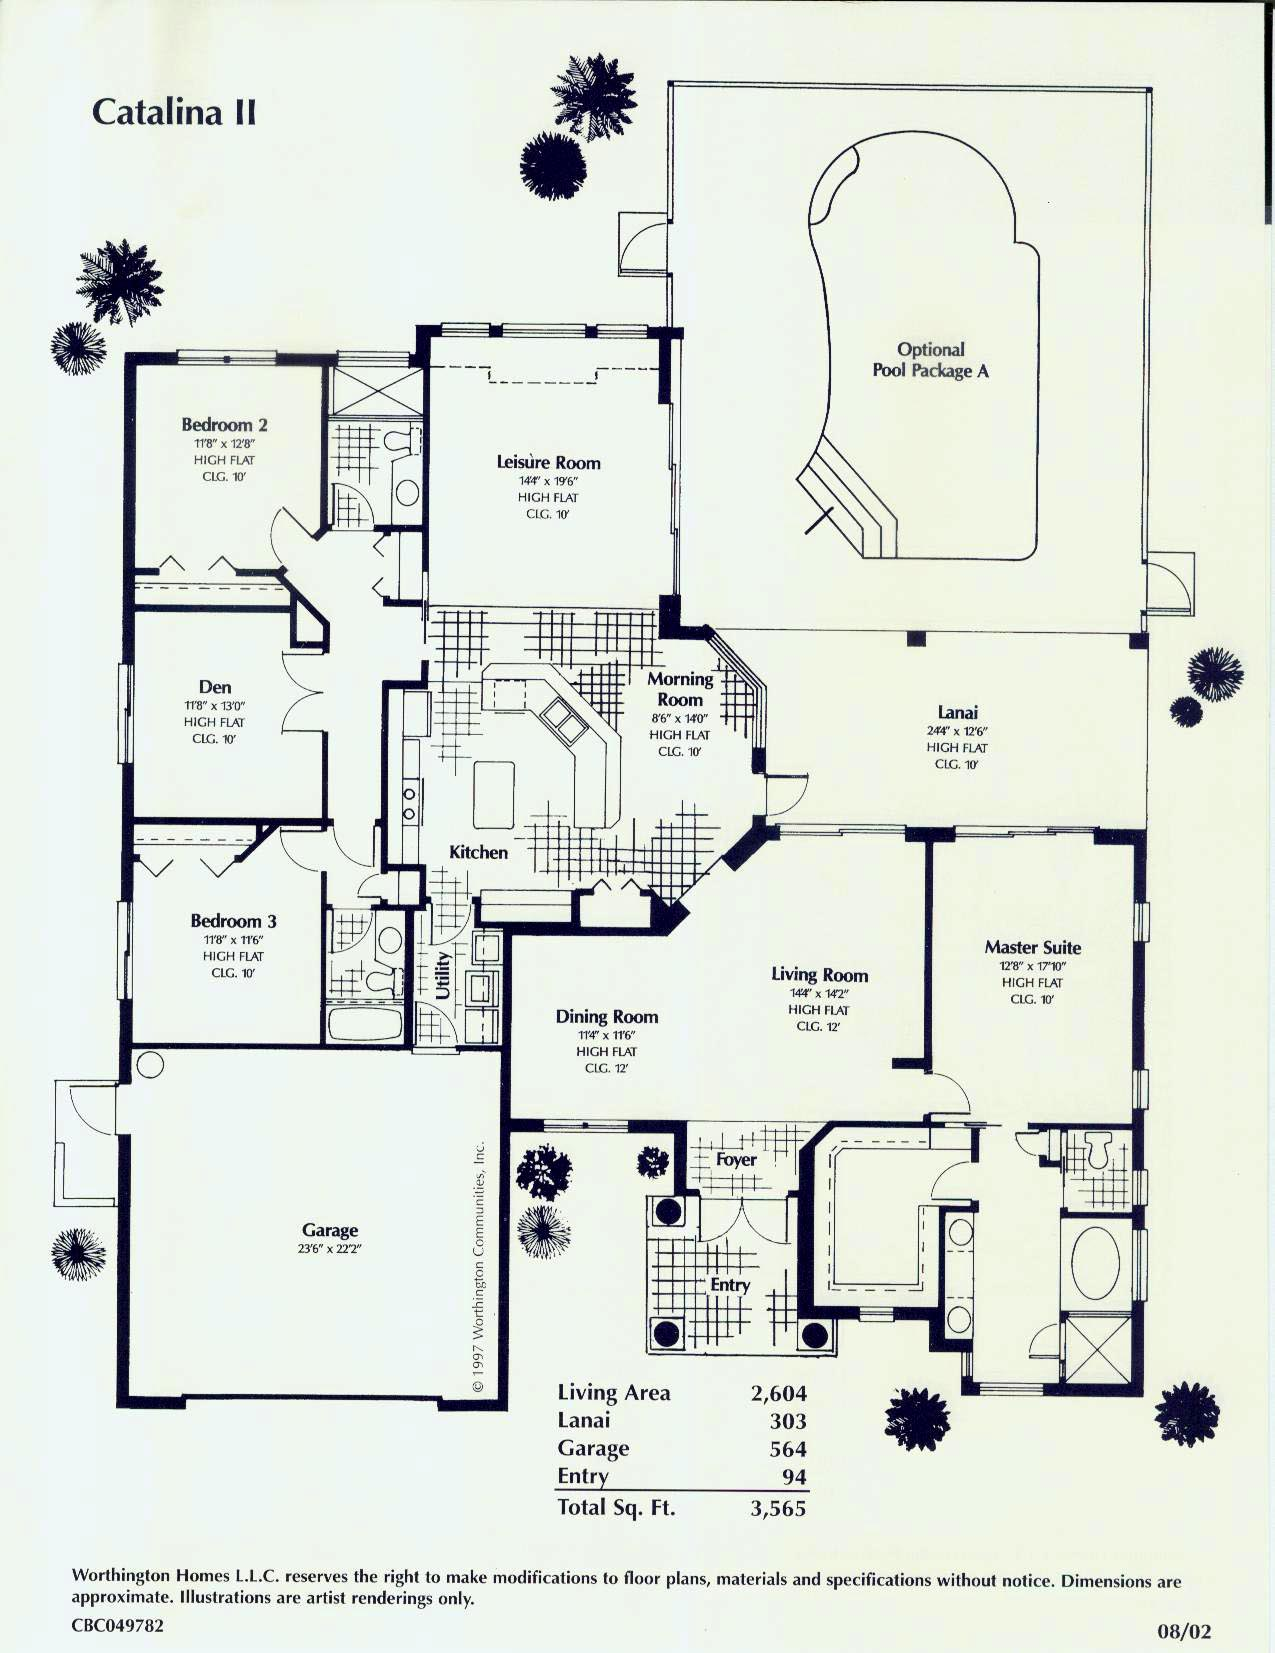 Southwest florida old florida style custom homes for Floor plans florida